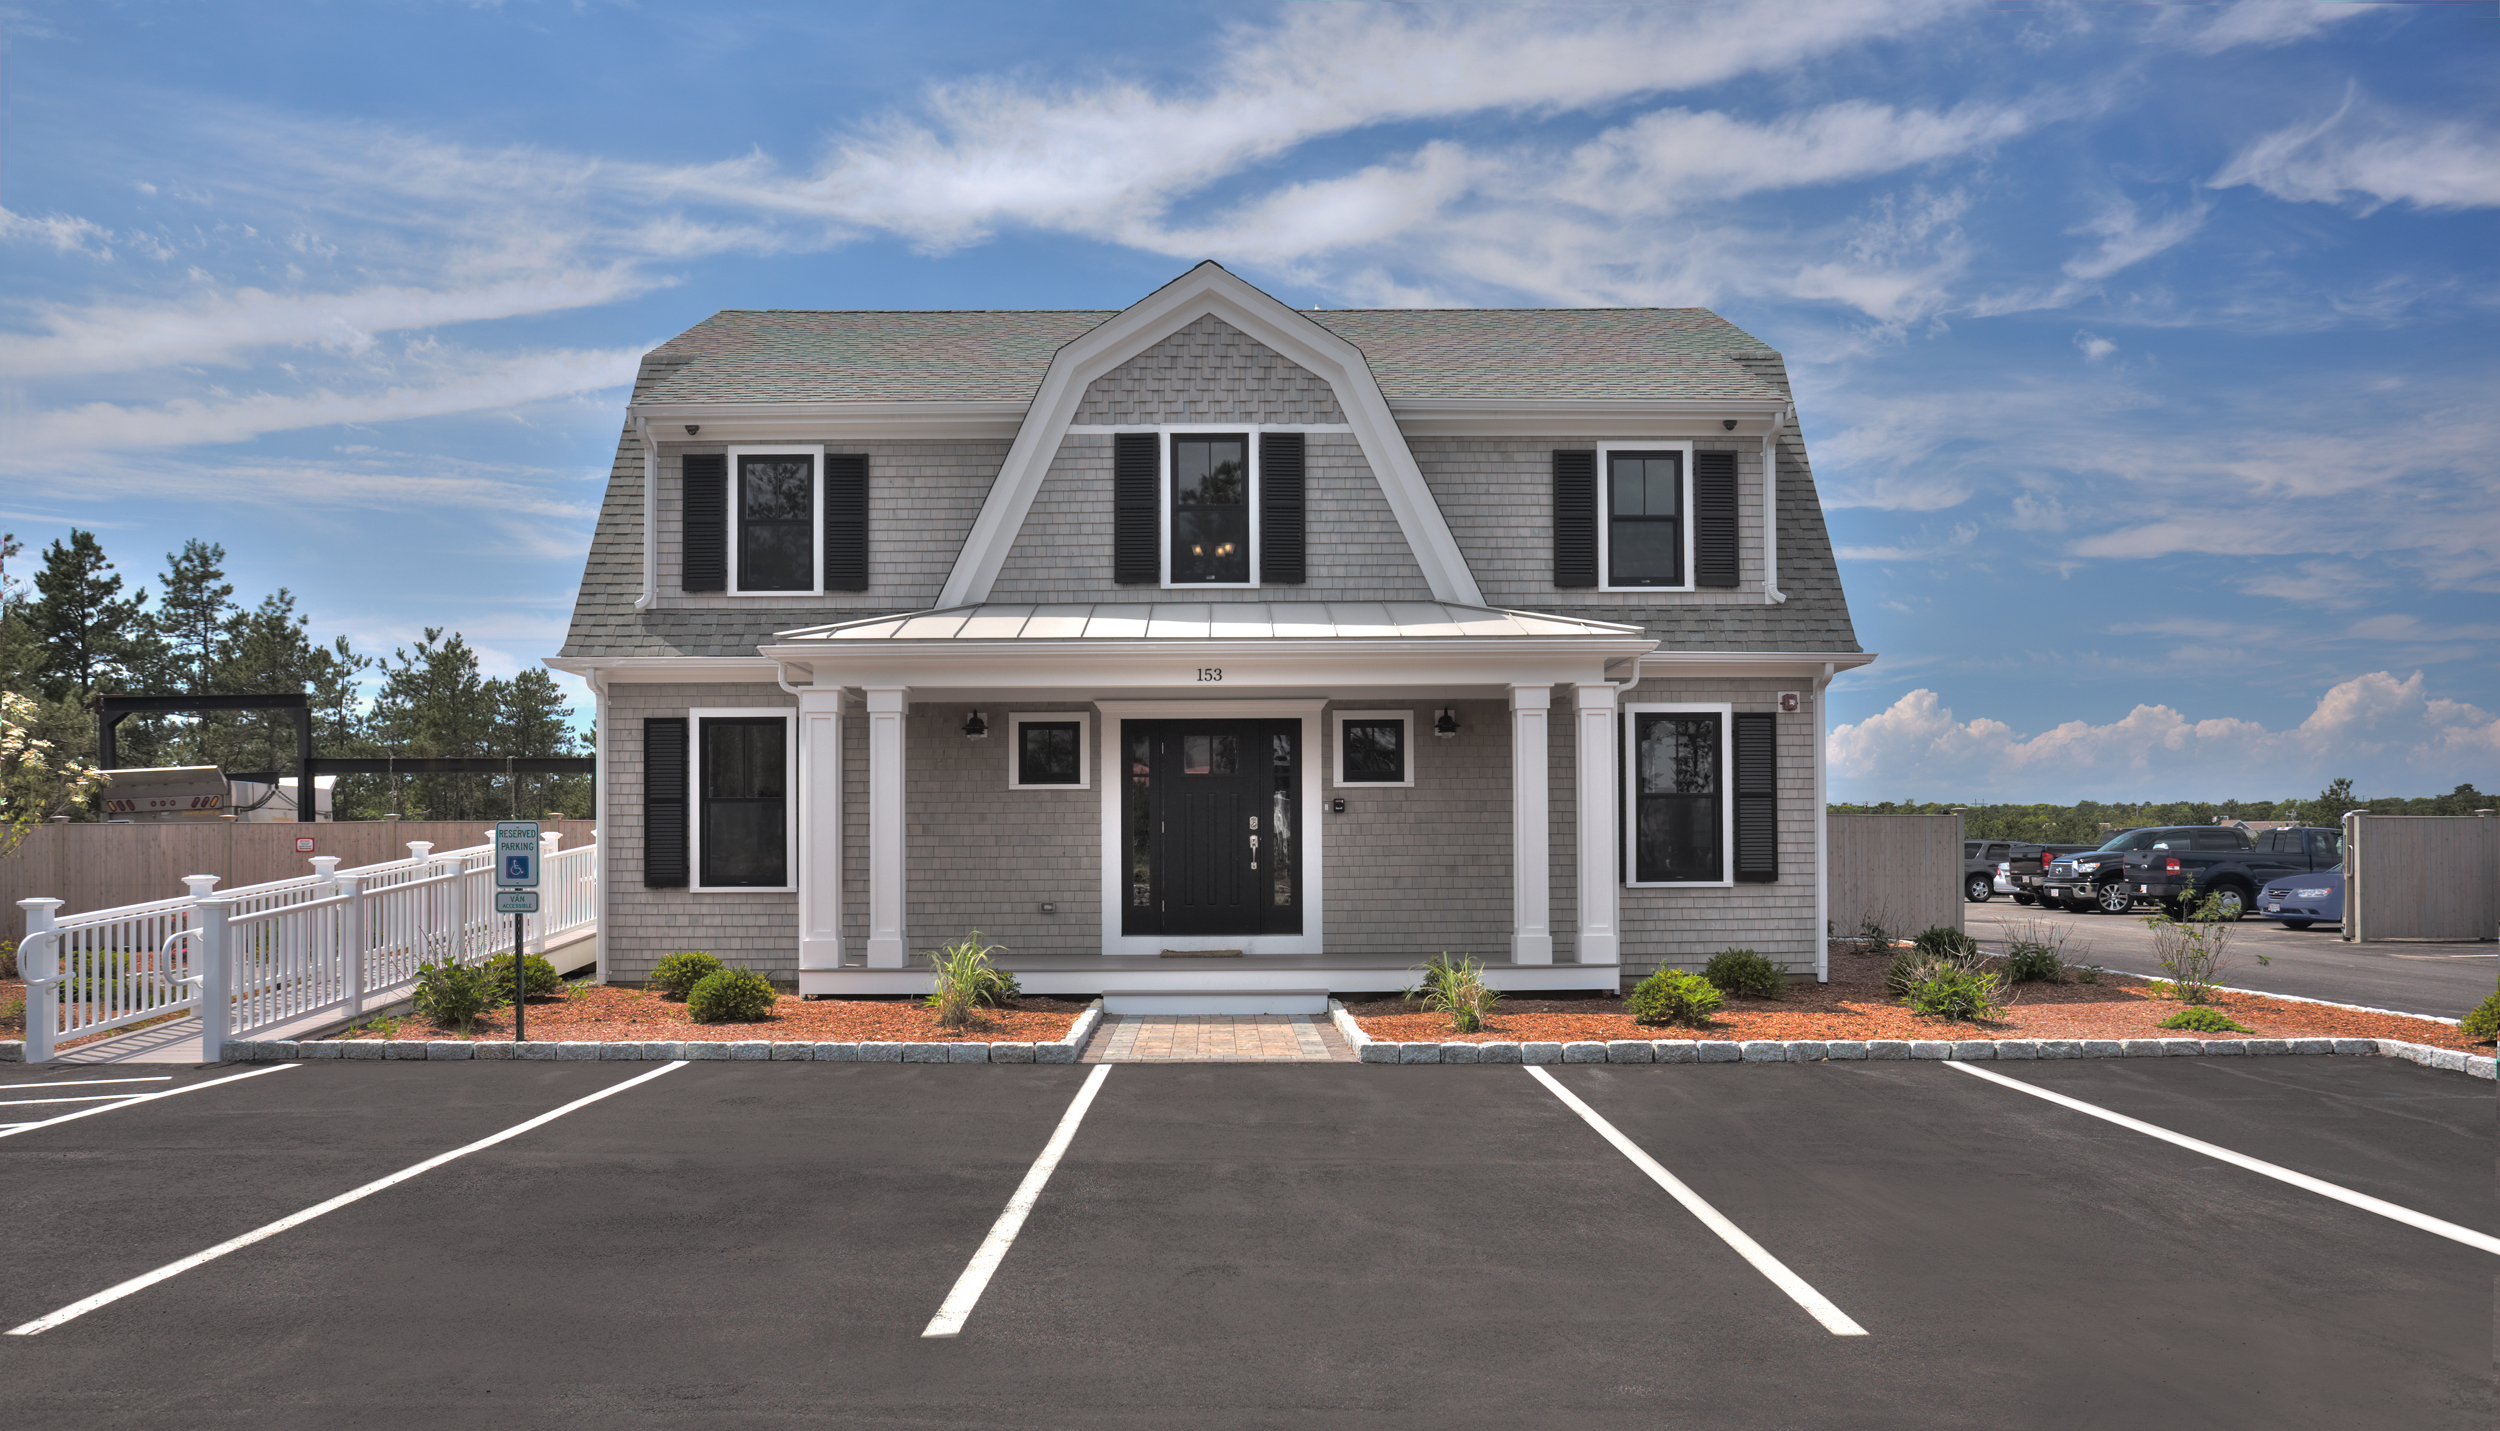 7,000± Sq Ft Office/Warehouse Building on 2± Acres for Sale or Lease in Mashpee, Cape Cod